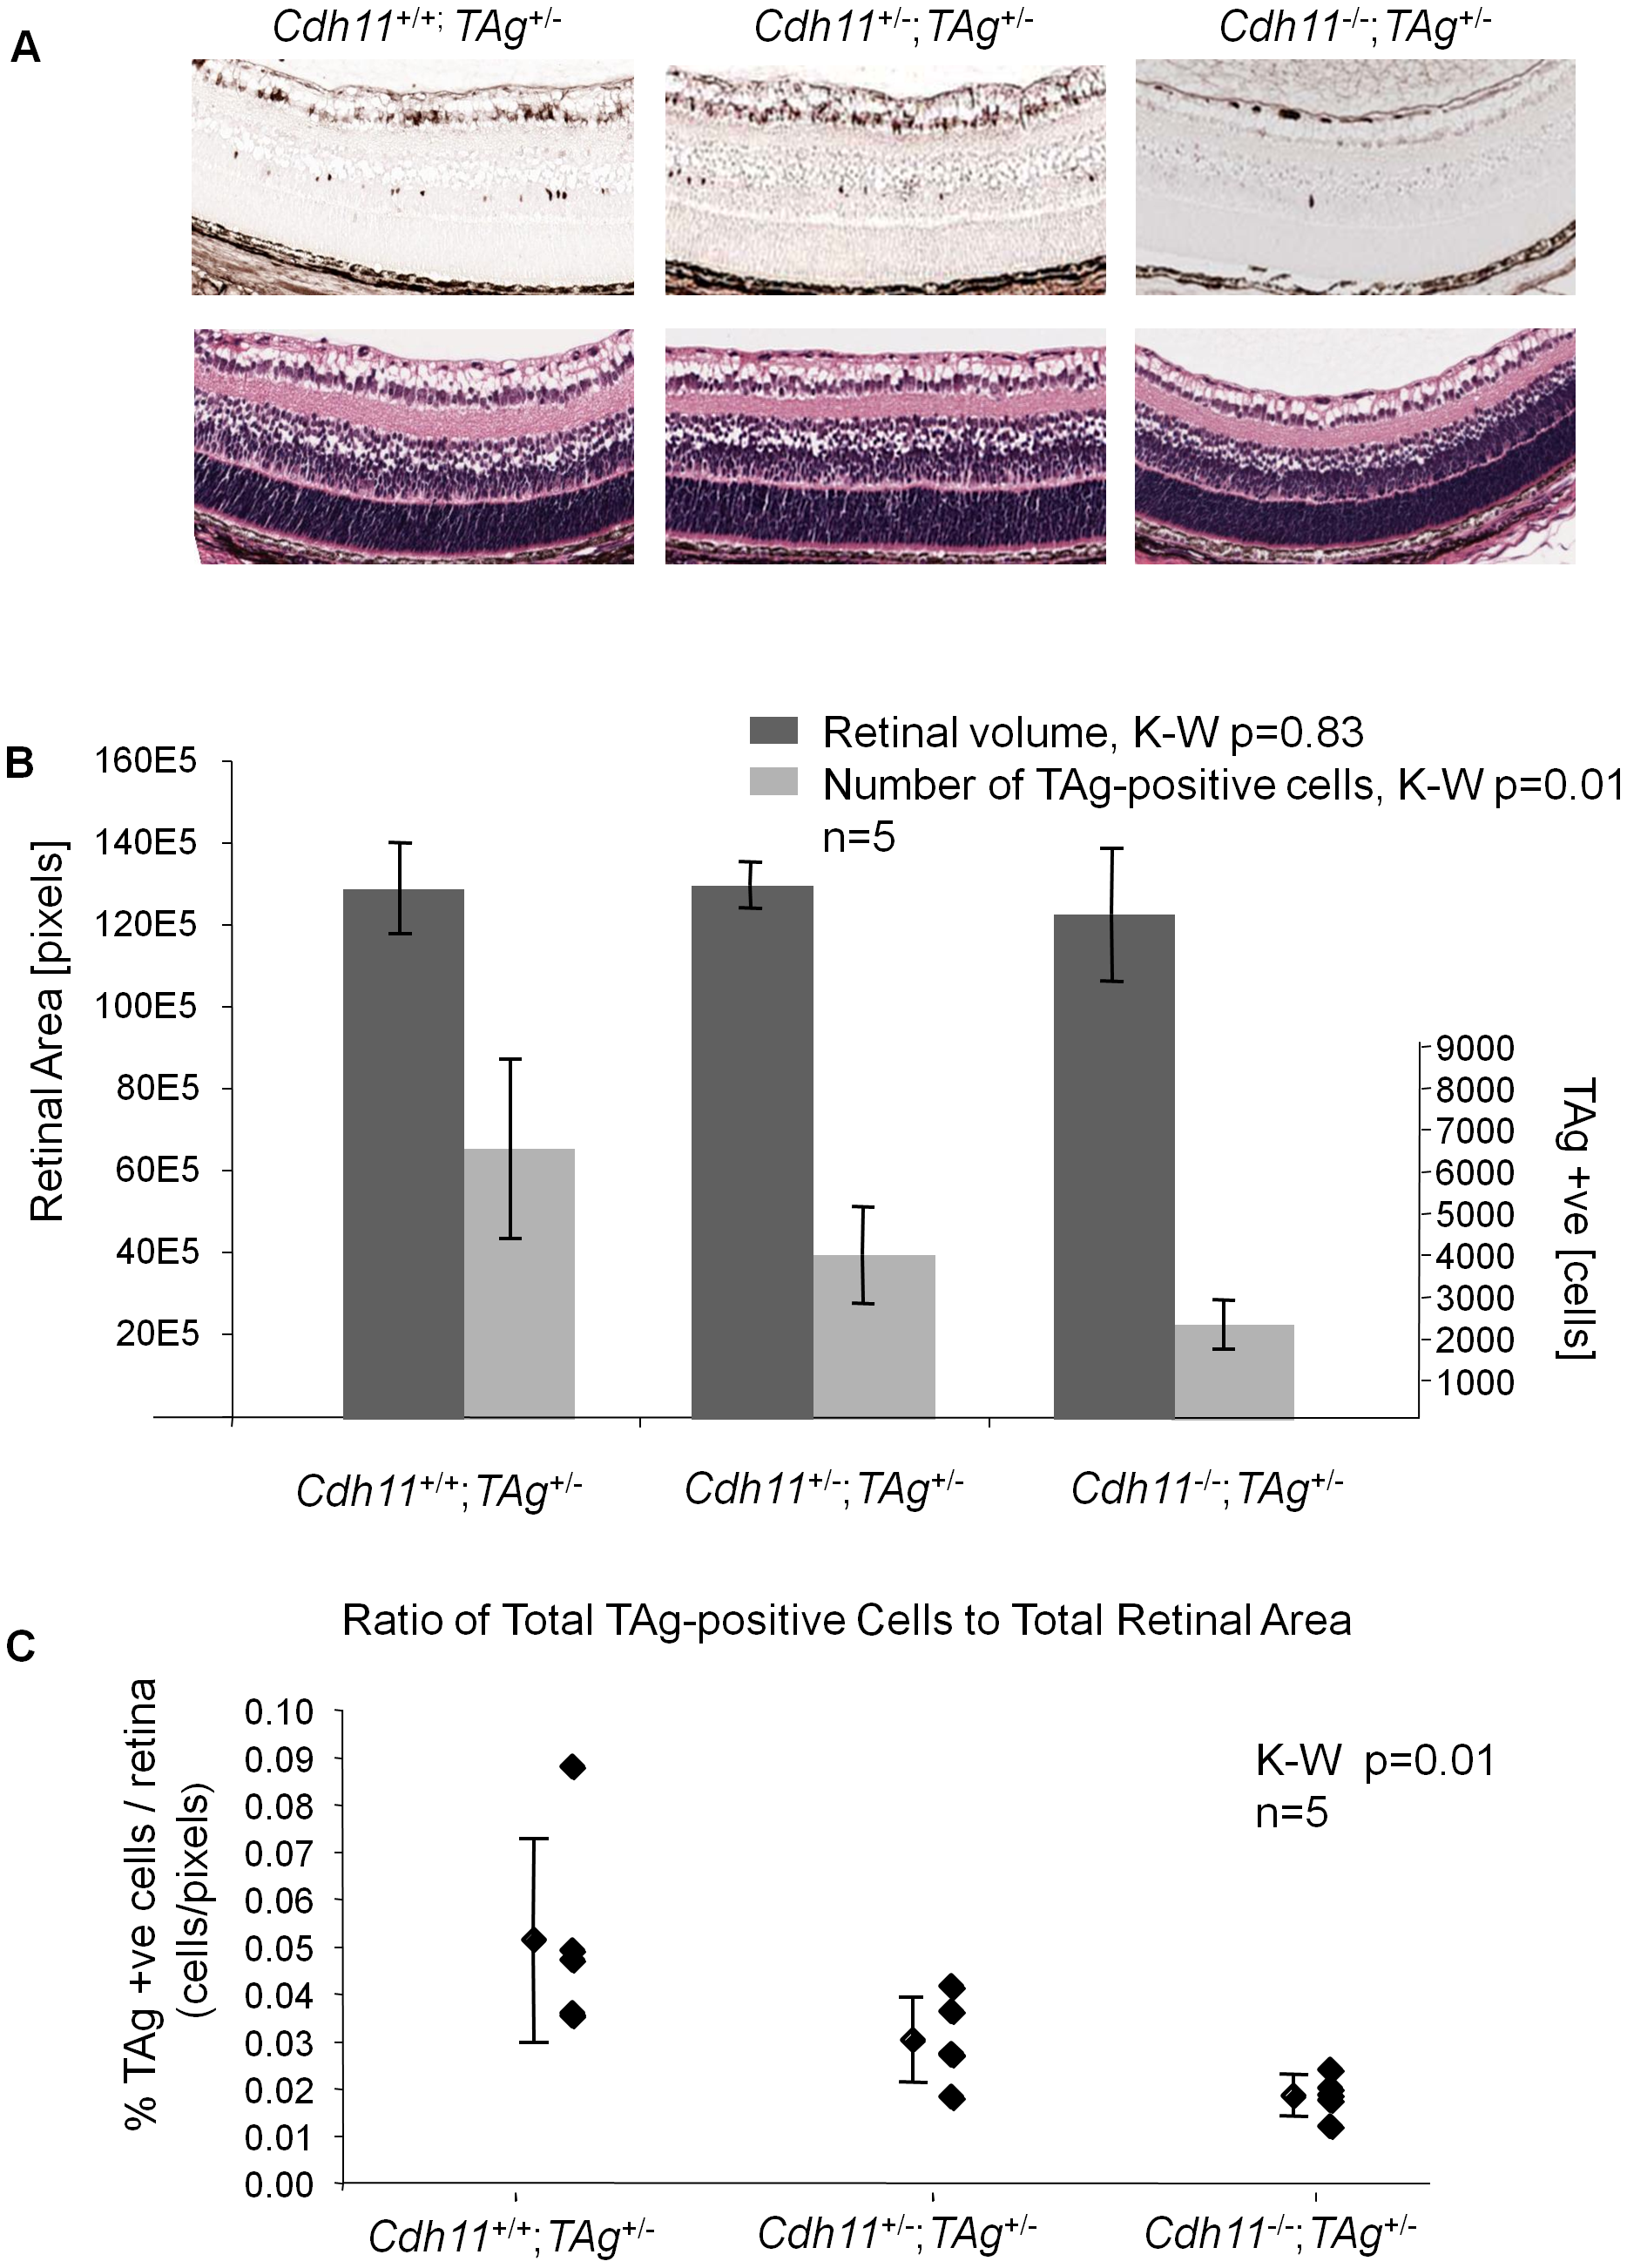 <i>Cdh11</i> genomic copy number correlates with number of TAg-positive cells (origin of tumors in TAg-RB mice) at PND8.